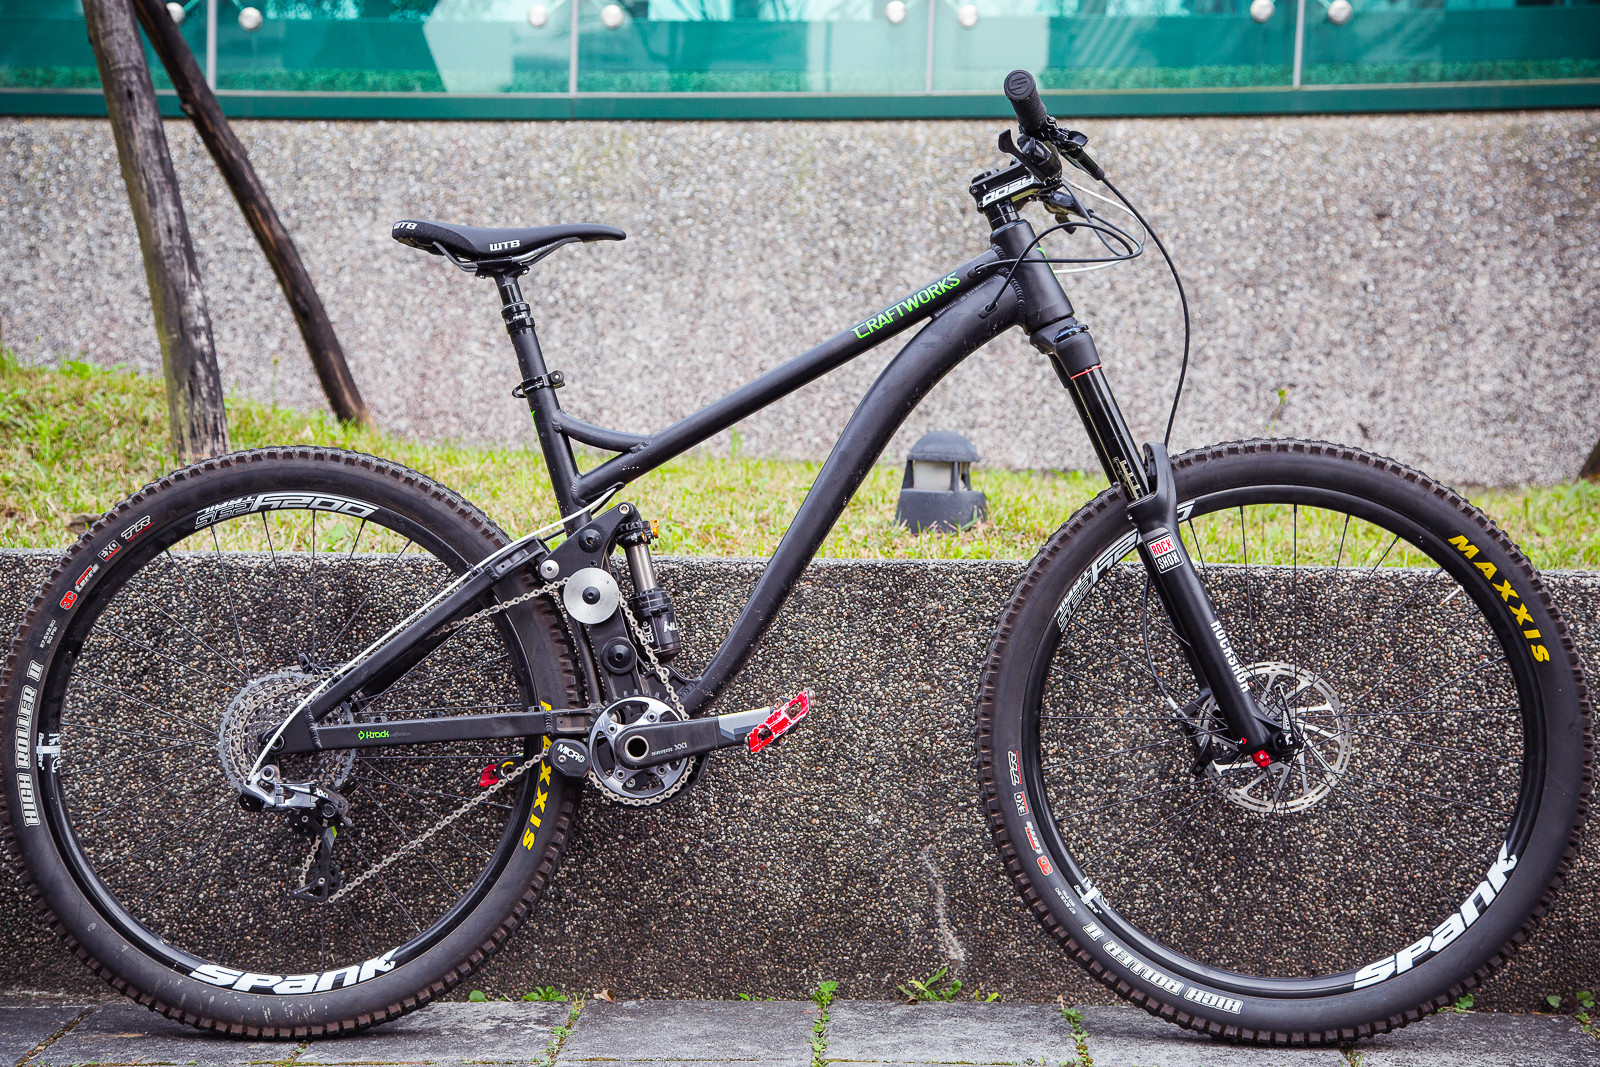 Craftworks ENR Prototype Photos and Video of Suspension in Action - Craftworks ENR Prototype from Taipei - Mountain Biking Pictures - Vital MTB